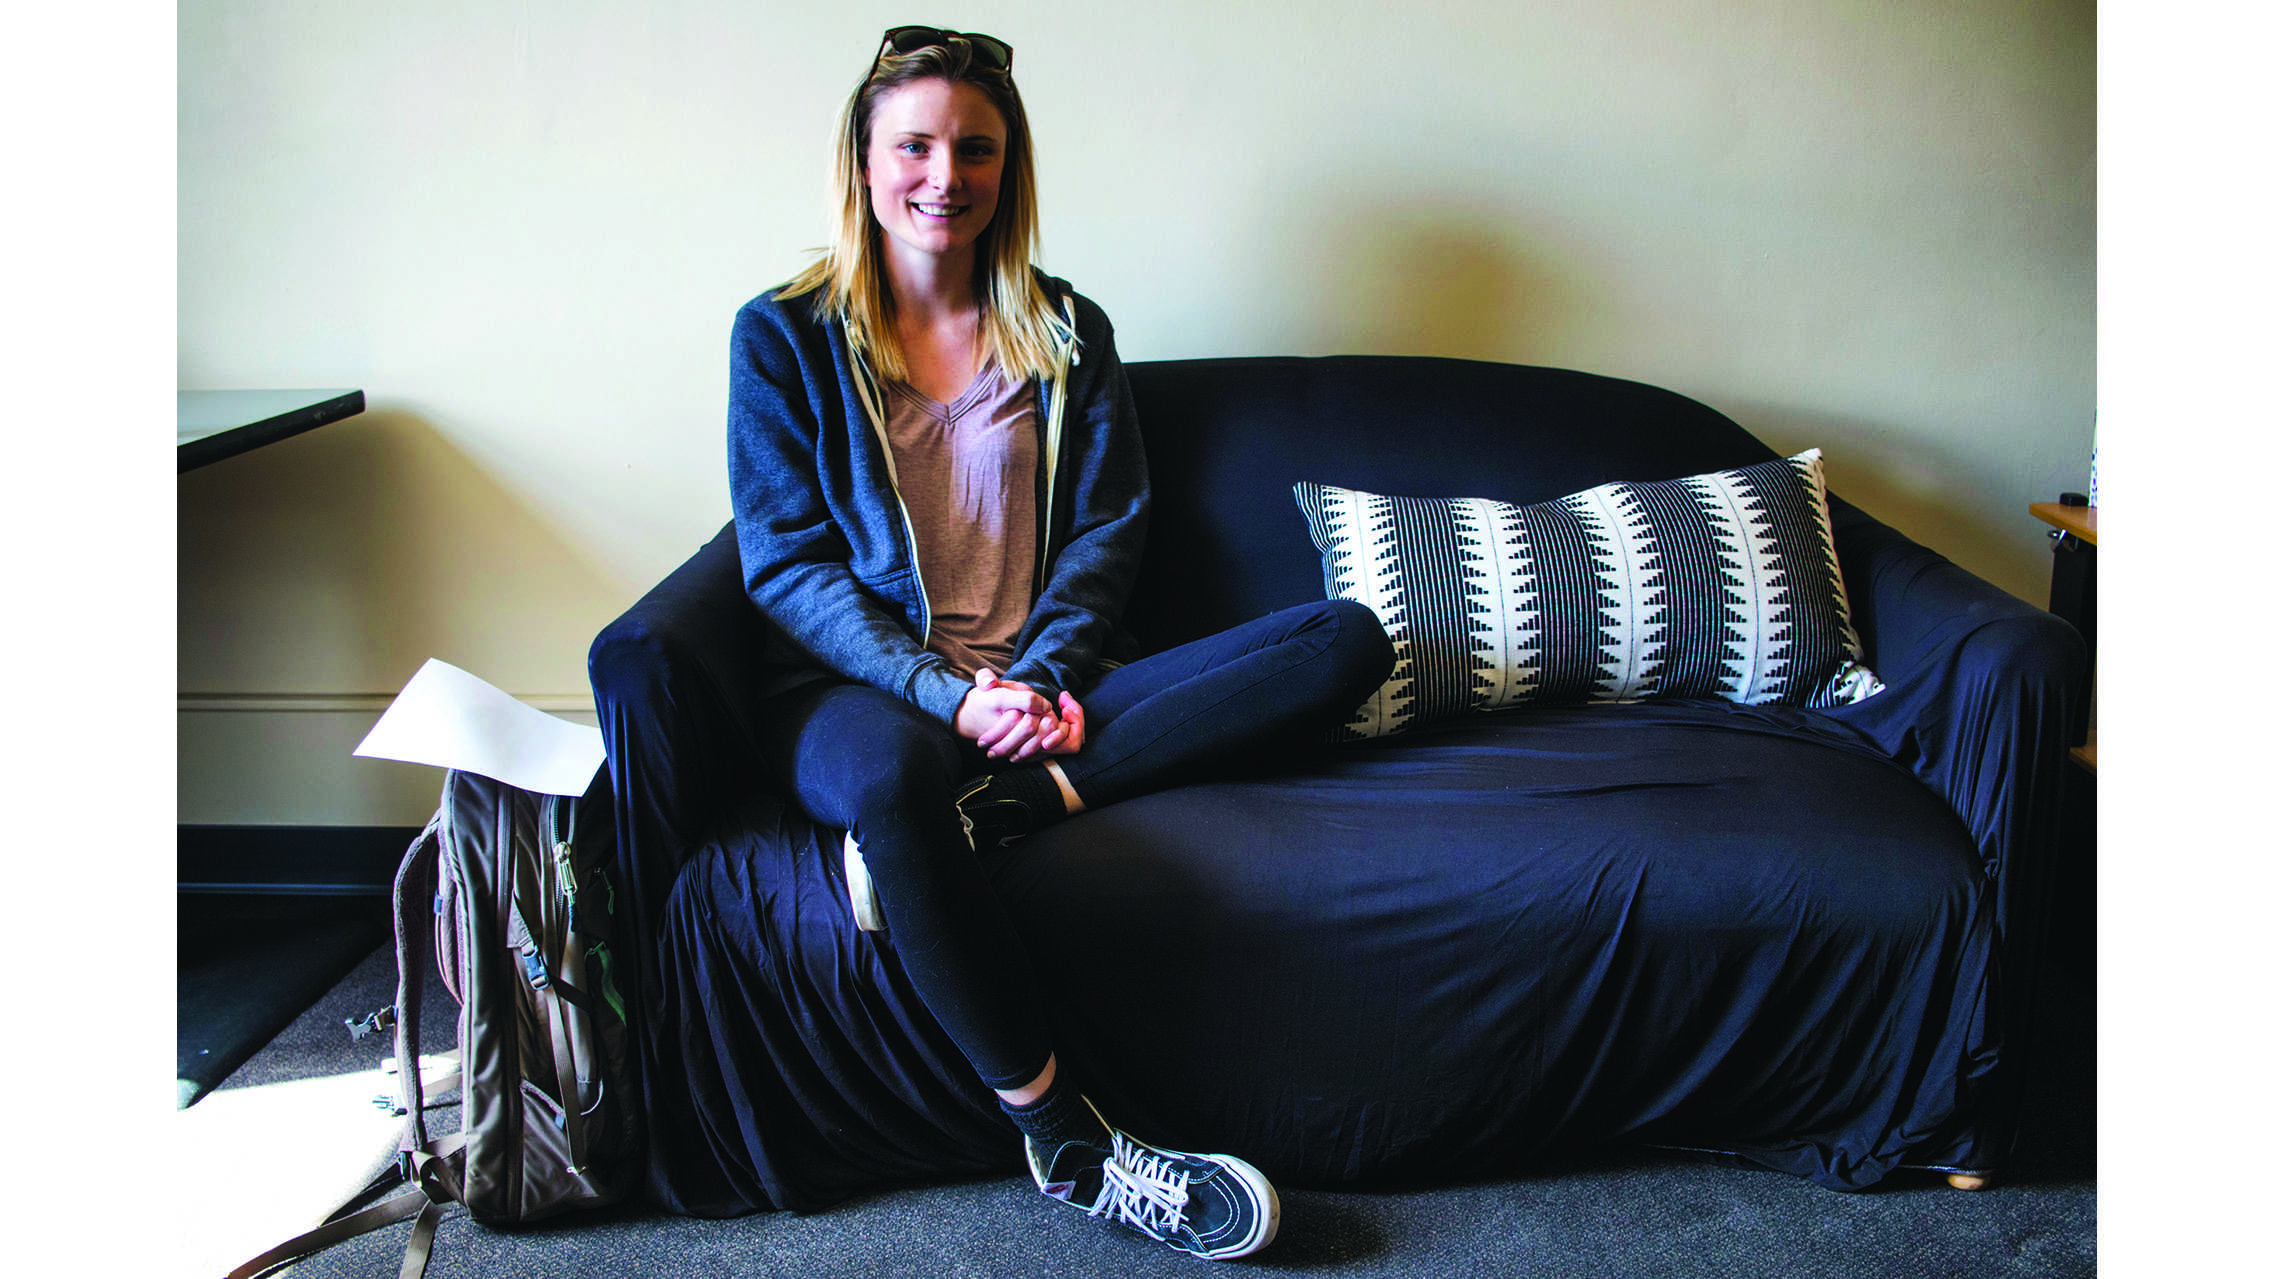 UI Collegiate Recovery Program supports students struggling with substance abuse